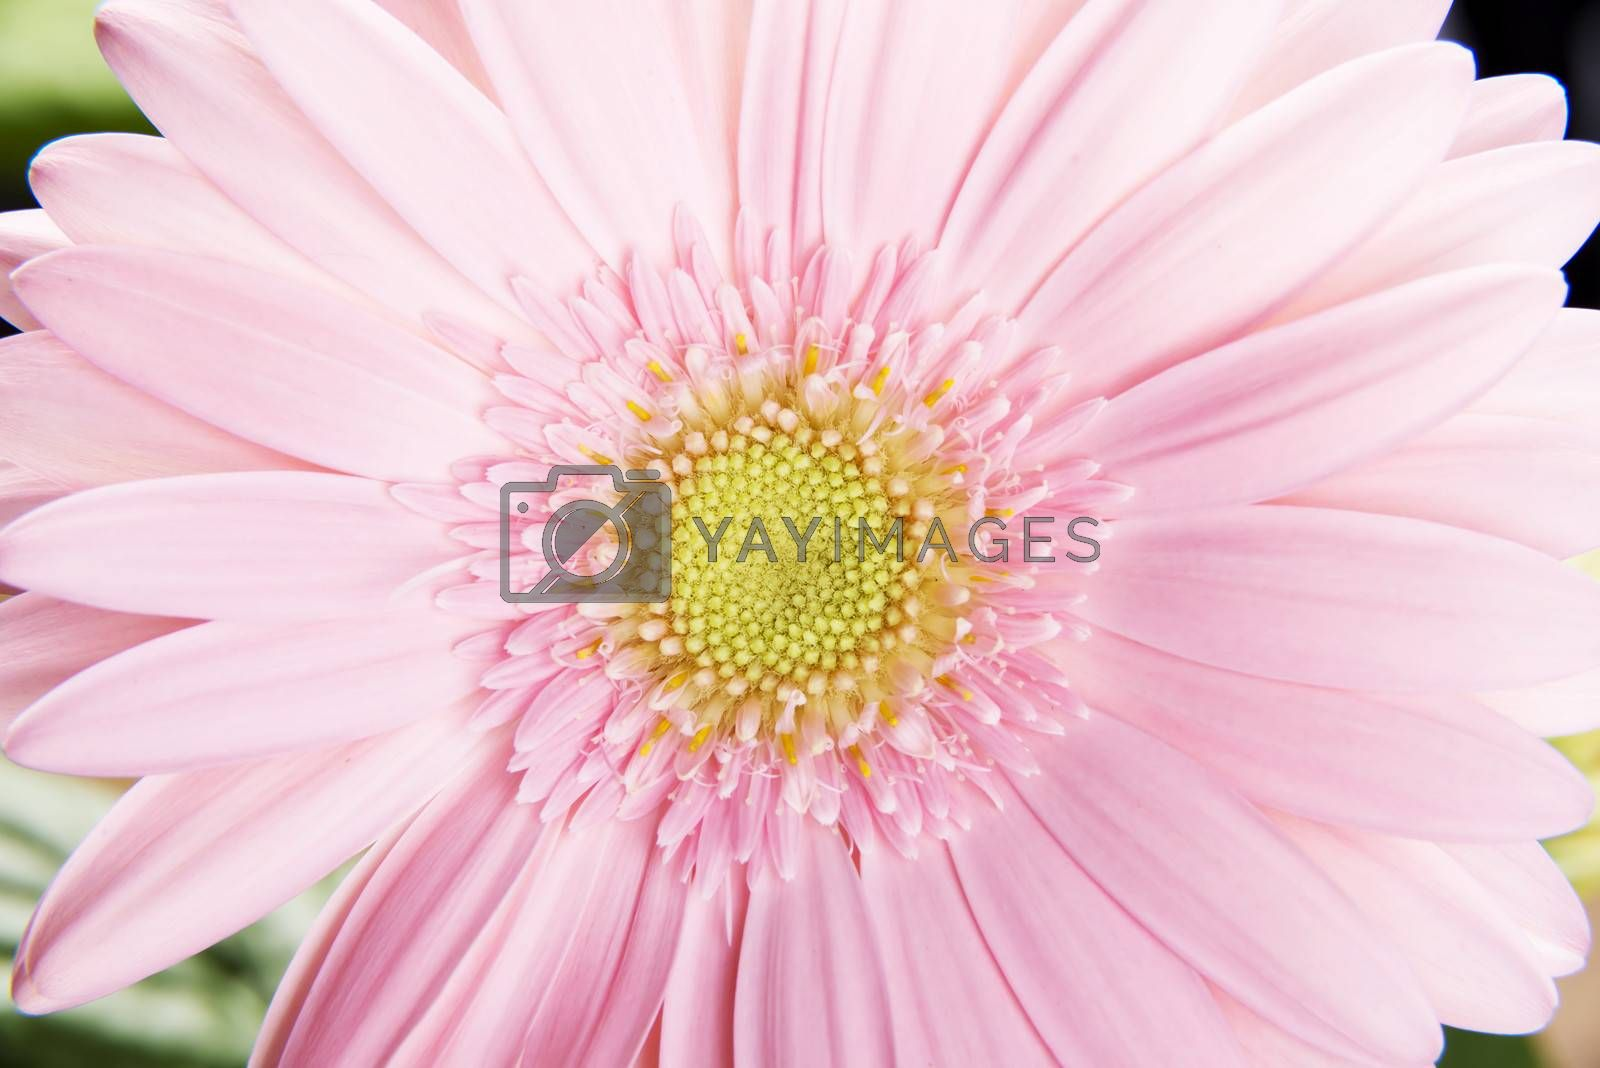 Royalty free image of Close up on fresh pink gerbera flower. by BDS